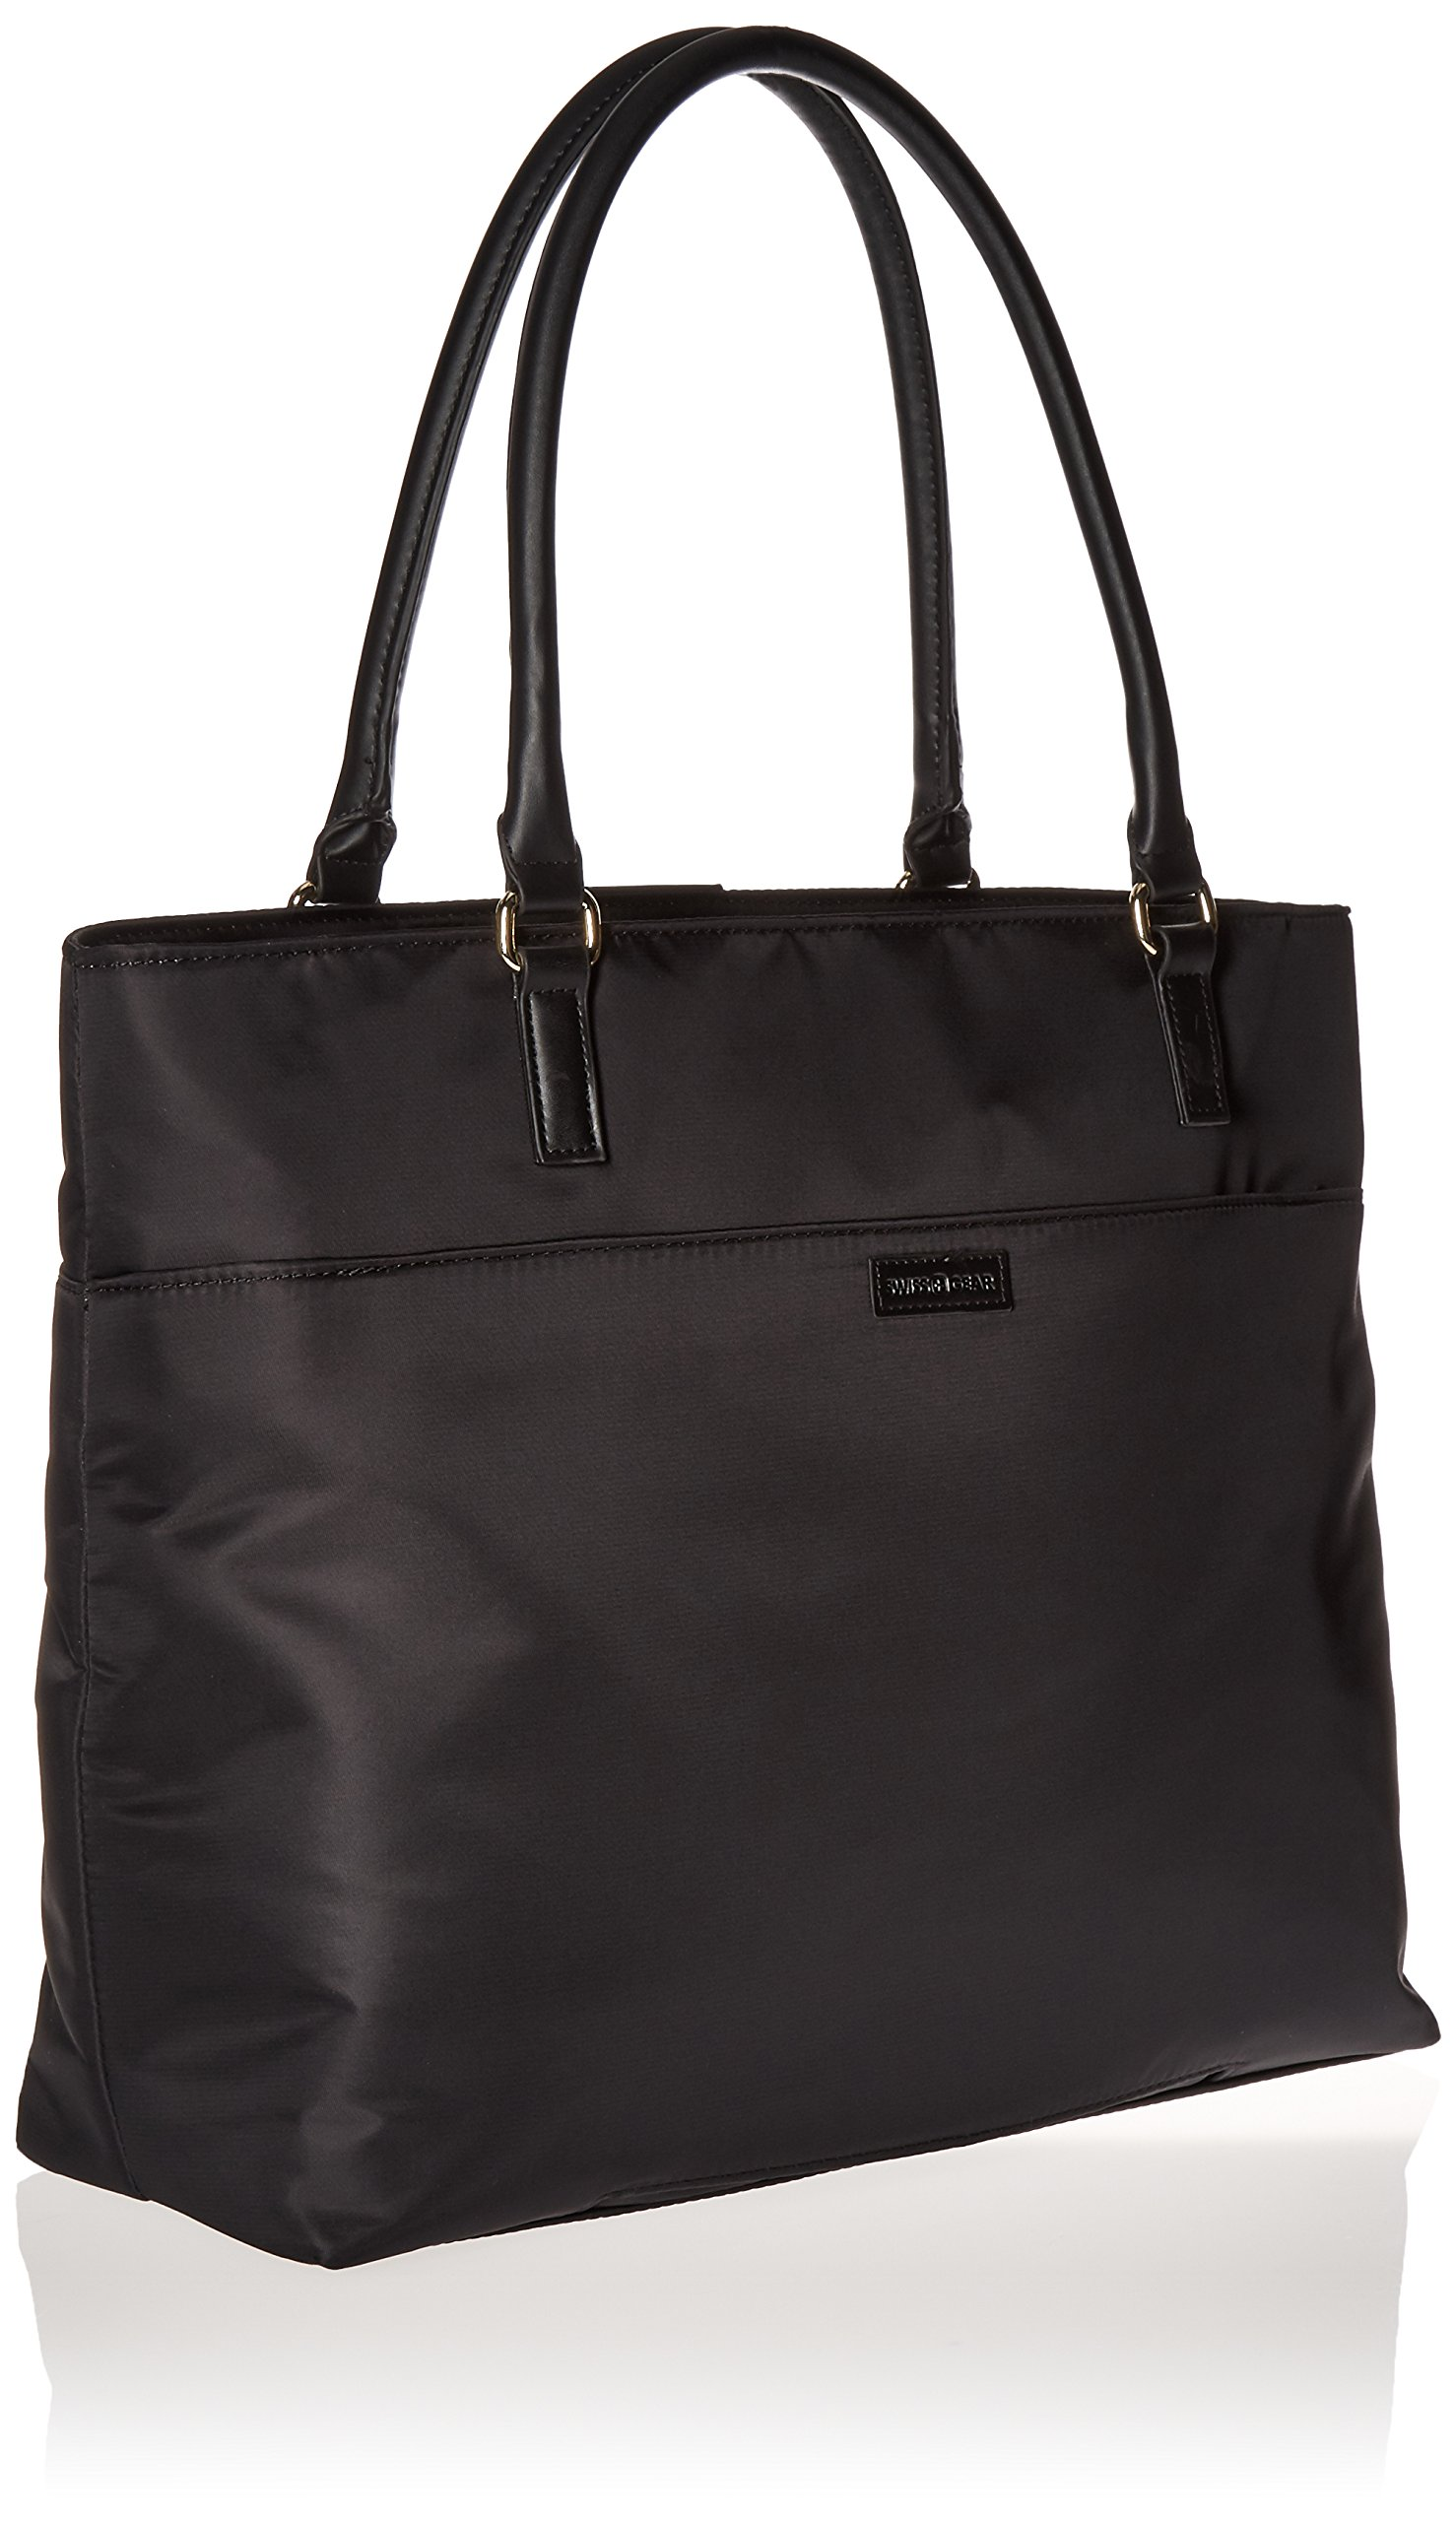 Wenger Luggage Ana 16'' Women's Laptop Tote Bag, Black, One Size by Wenger (Image #2)